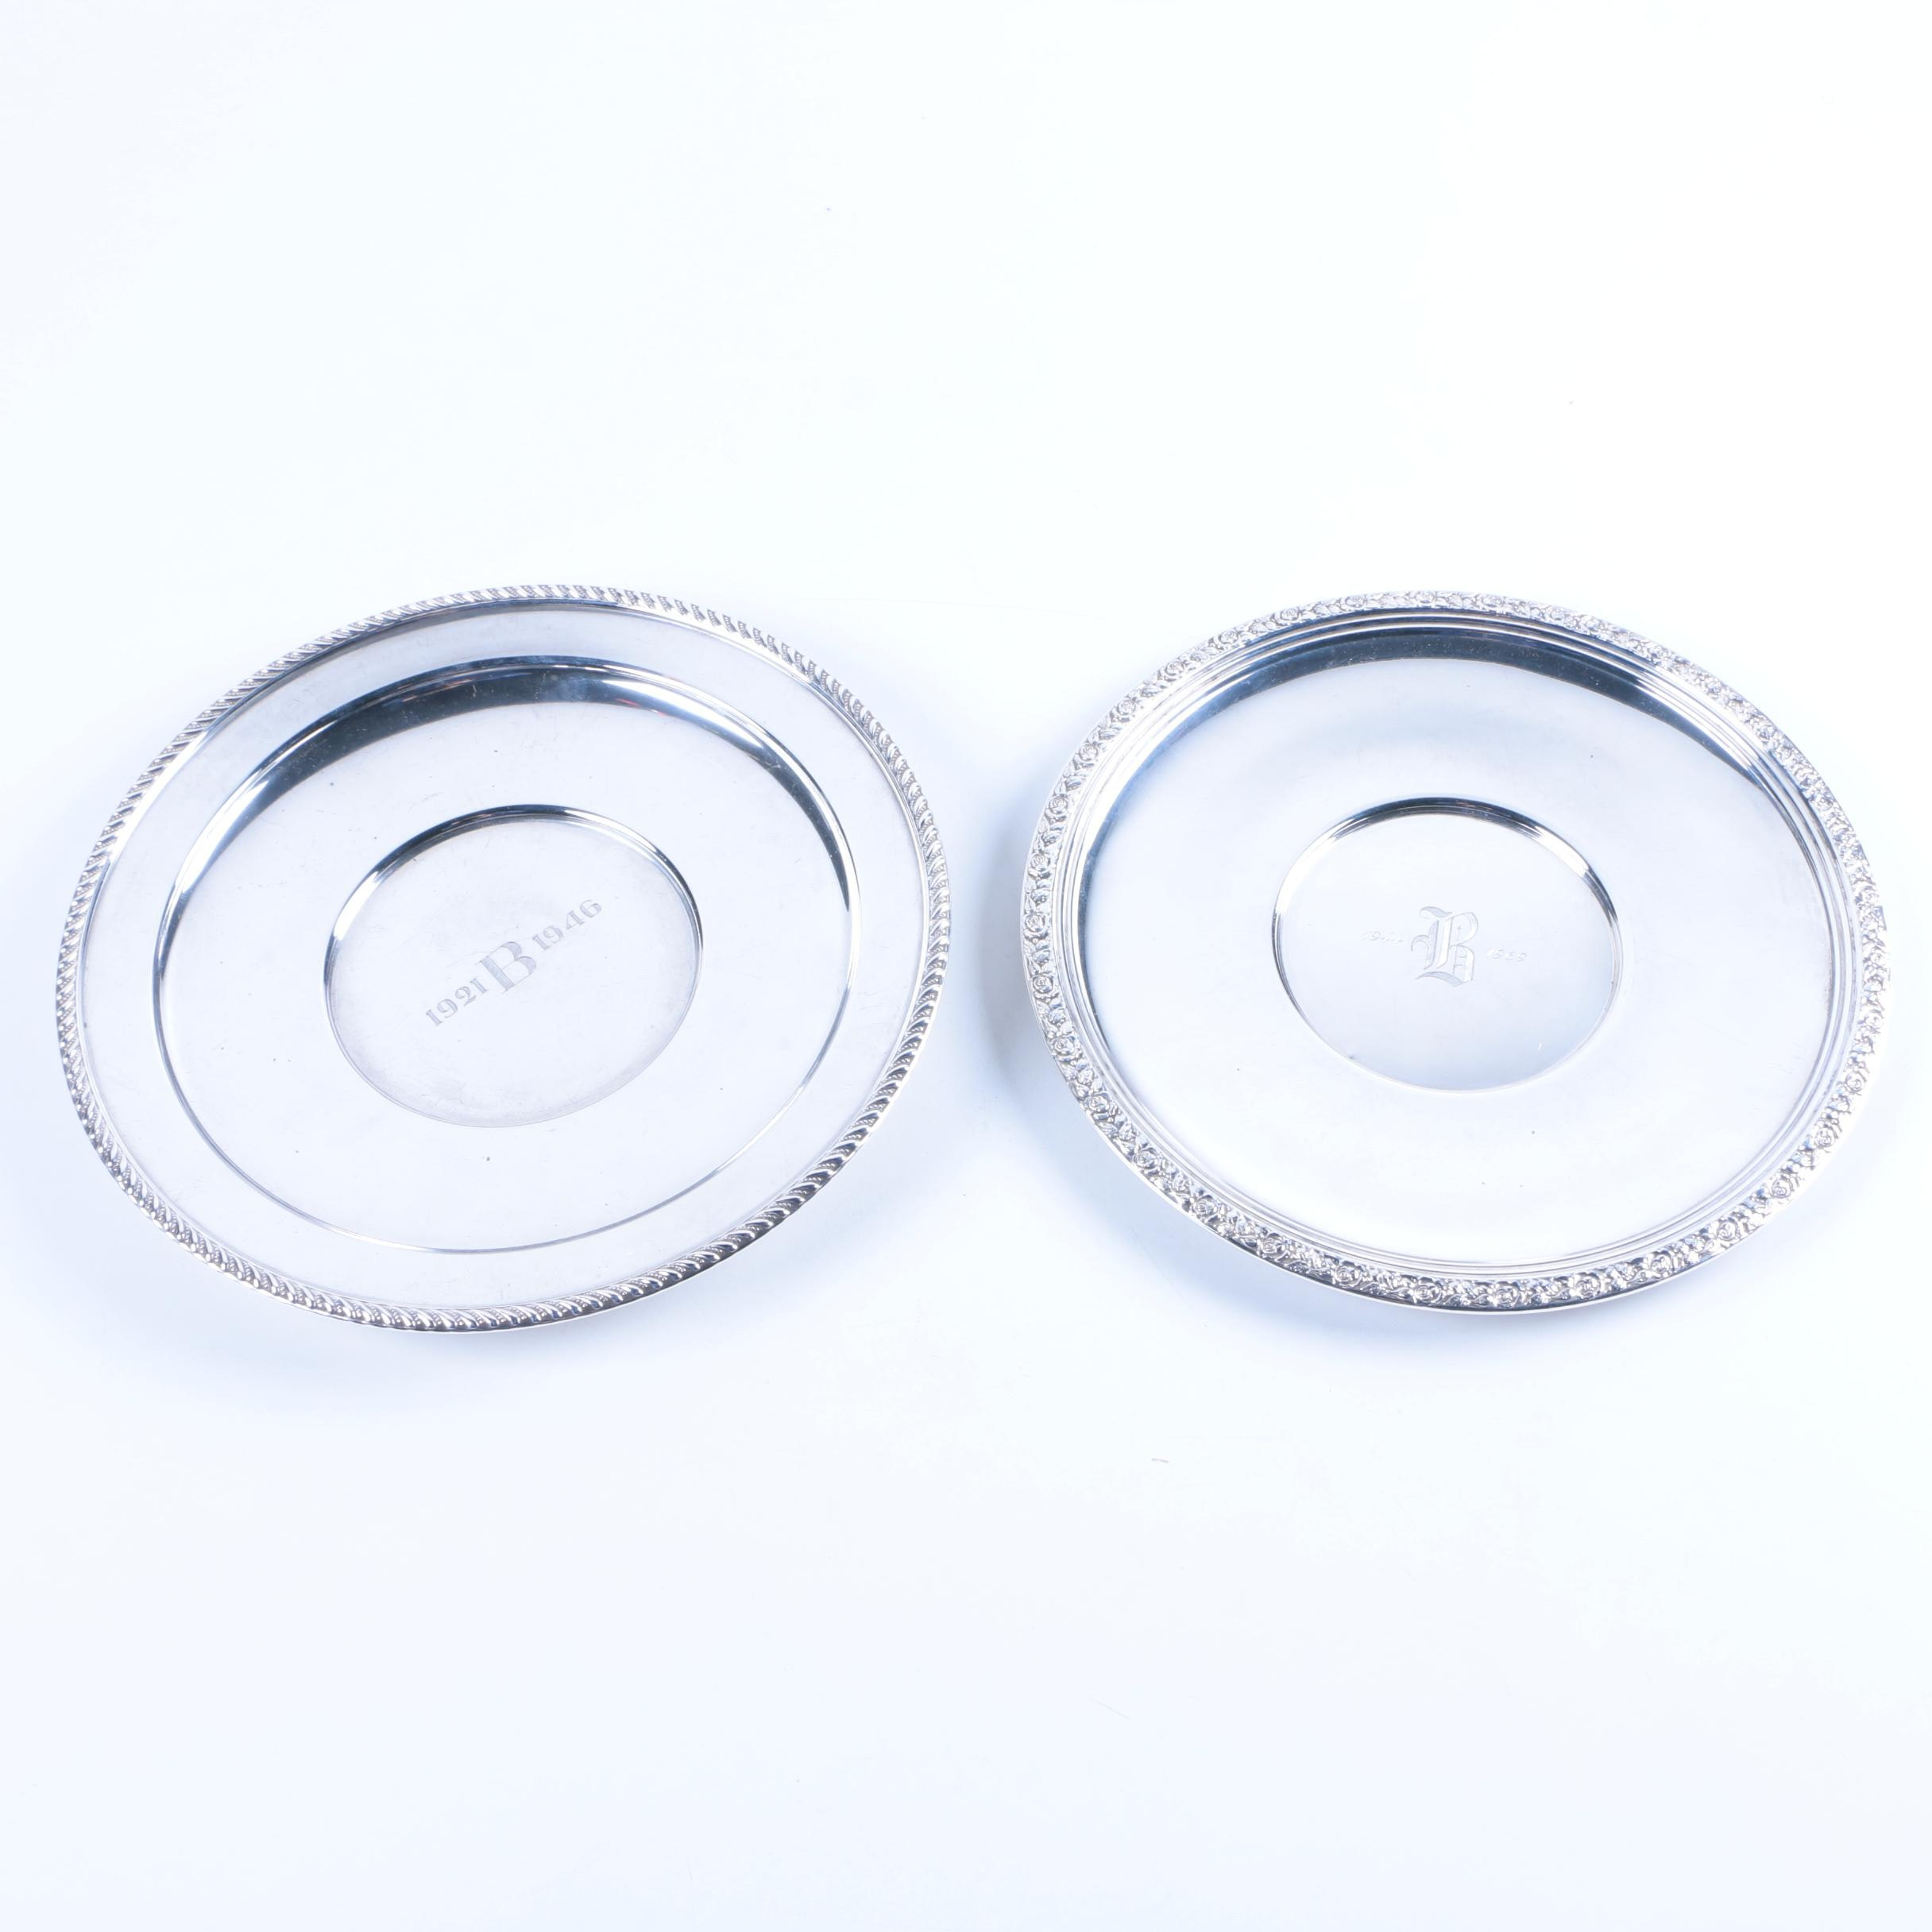 Empire and National Silver Co. Commemorative Sterling Silver Sandwich Plates